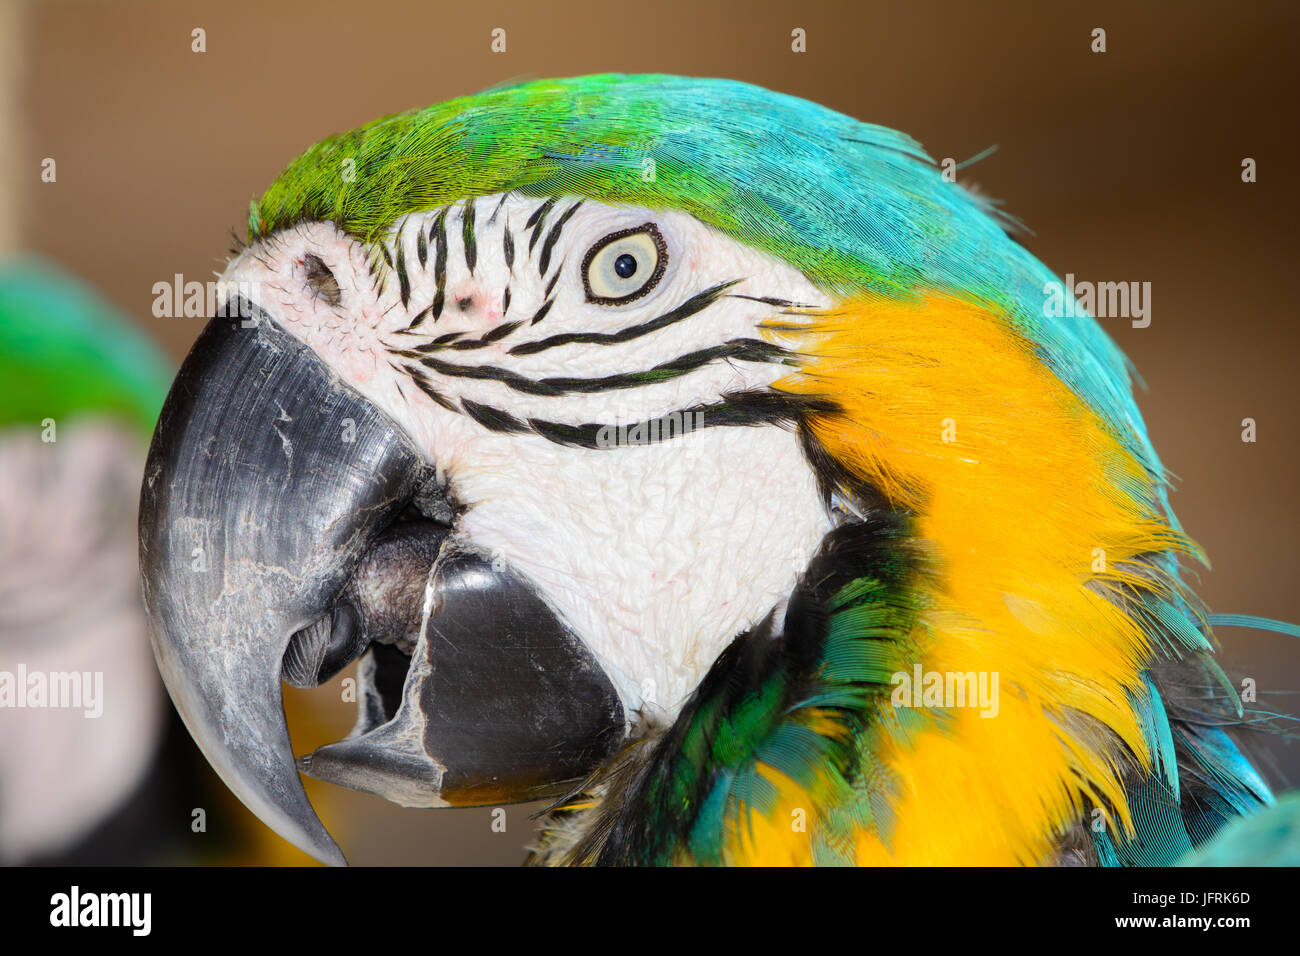 blue-and-yellow macaw (Ara ararauna), Also known as a blue-and-gold macaw. Close-up of face. Eyes Open - Stock Image